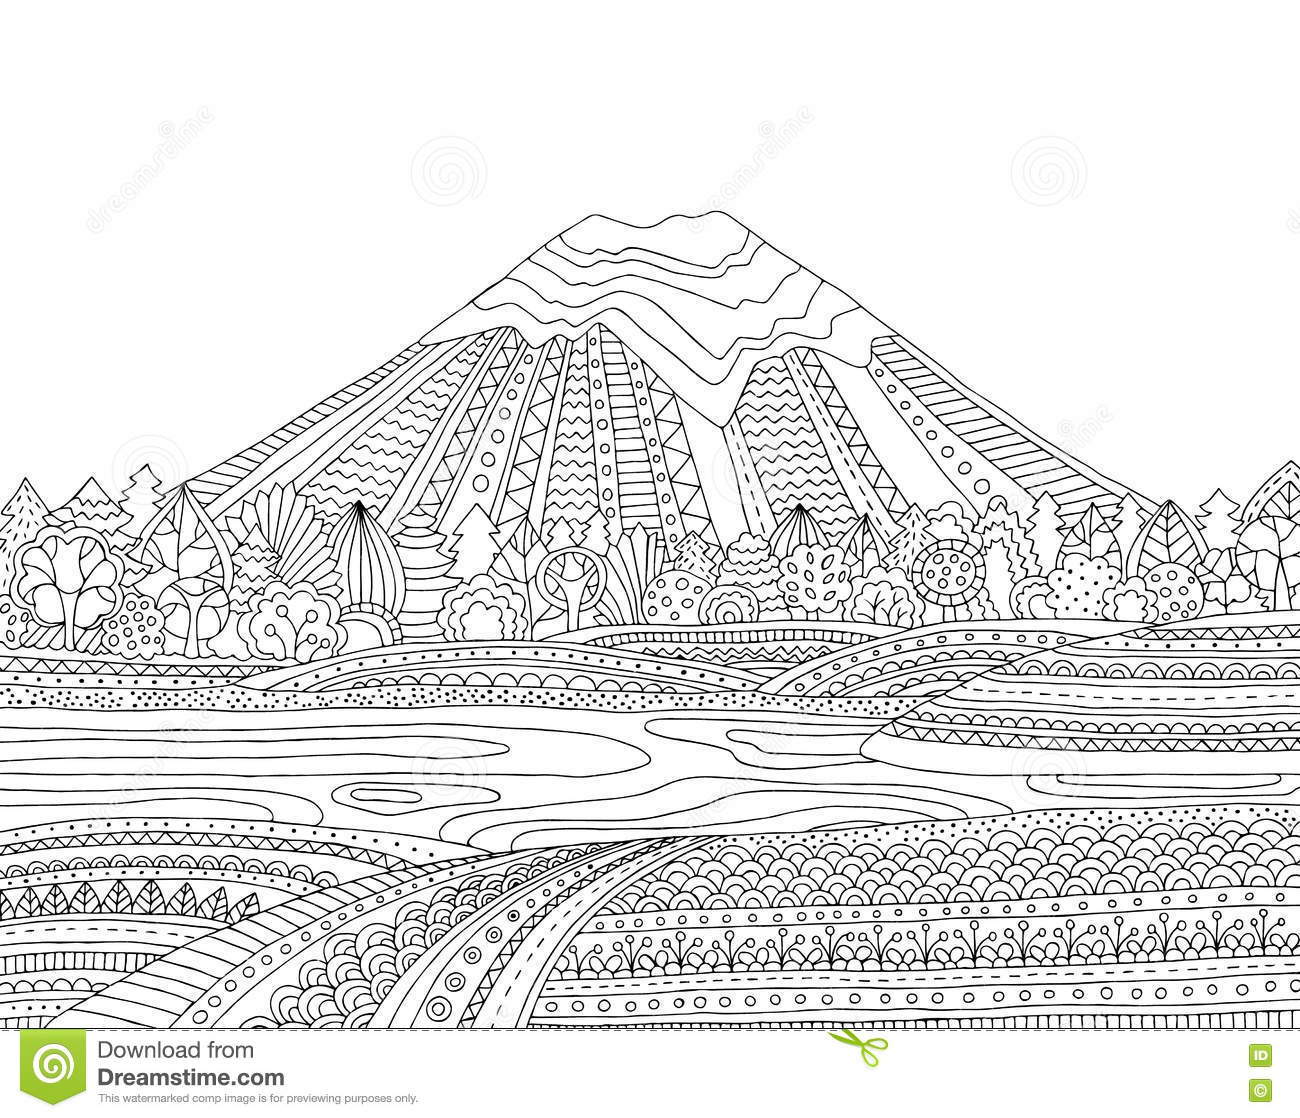 printable coloring page for adults with mountain landscape lake